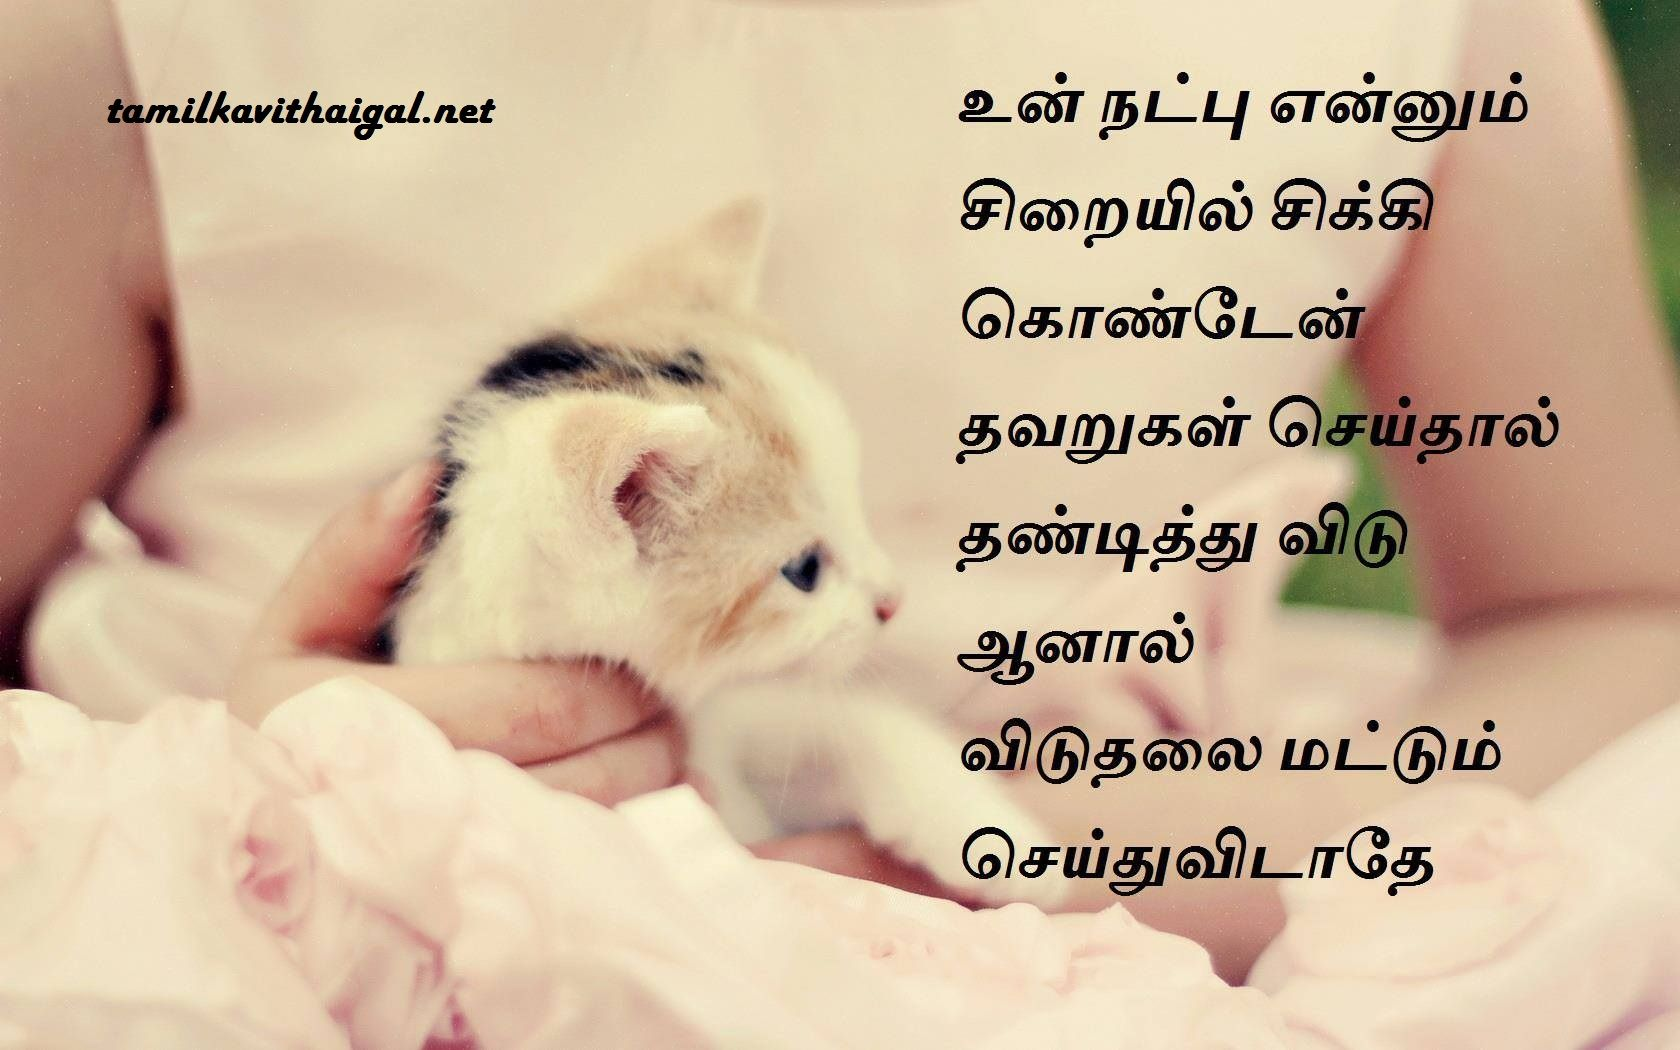 Tamil Kavithai in Thanglish about Thathuvam Friends